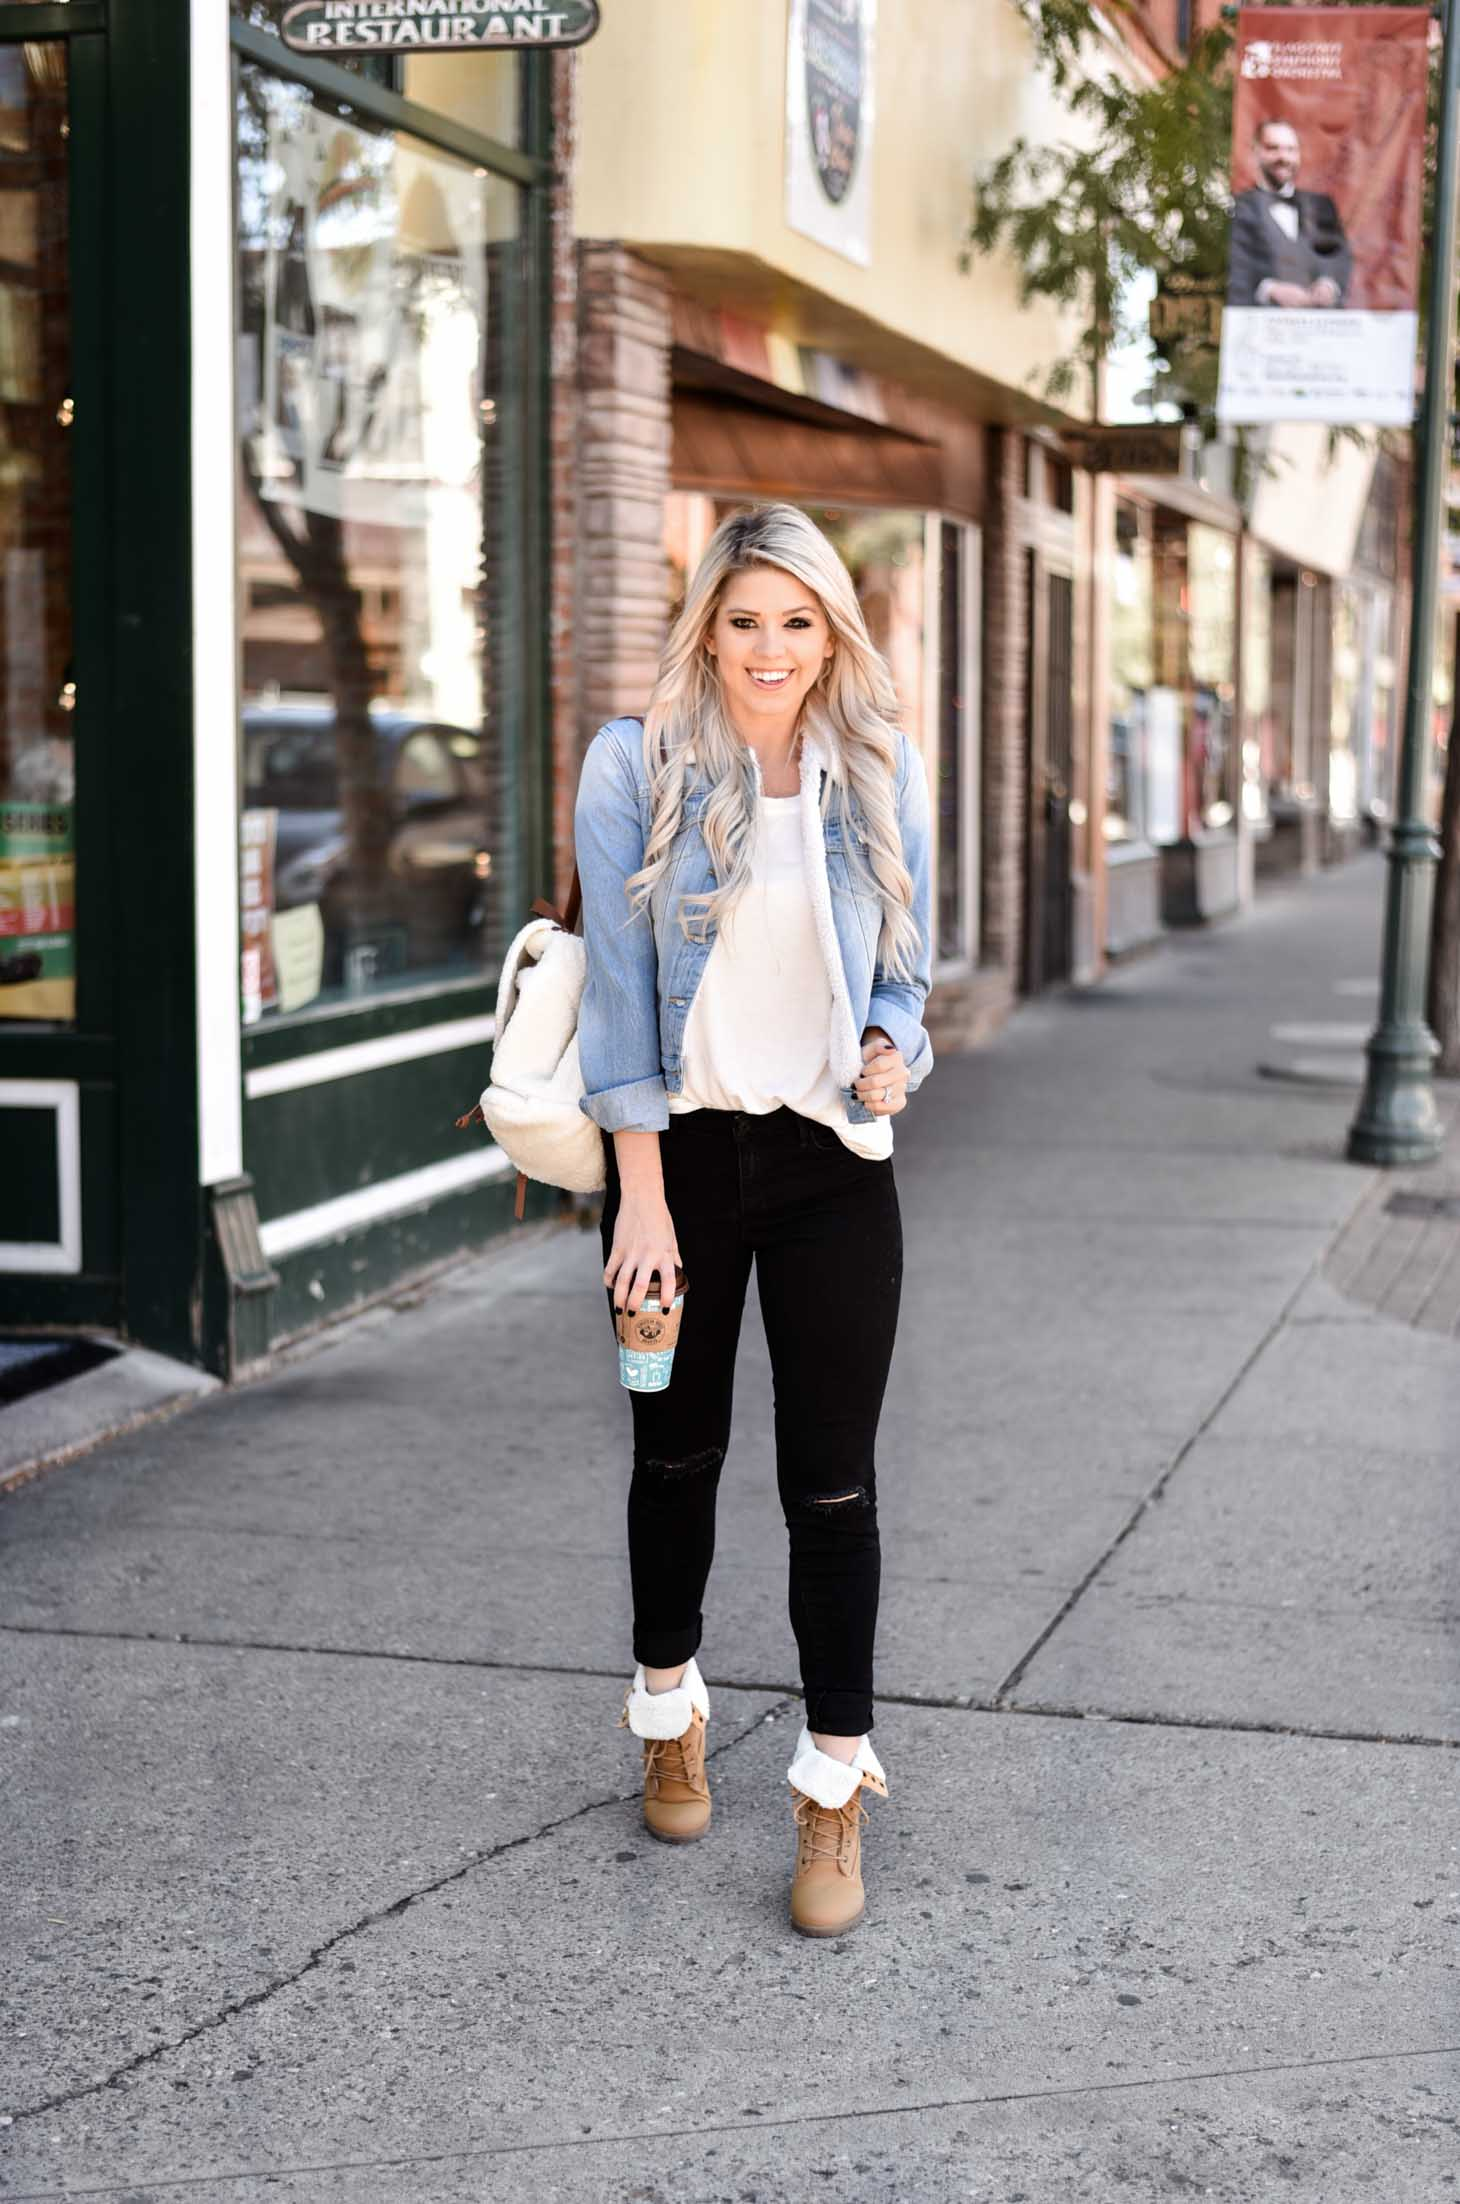 Erin Elizabeth of Wink and a Twirl shares a day and night look for Fall with Discovery Clothing